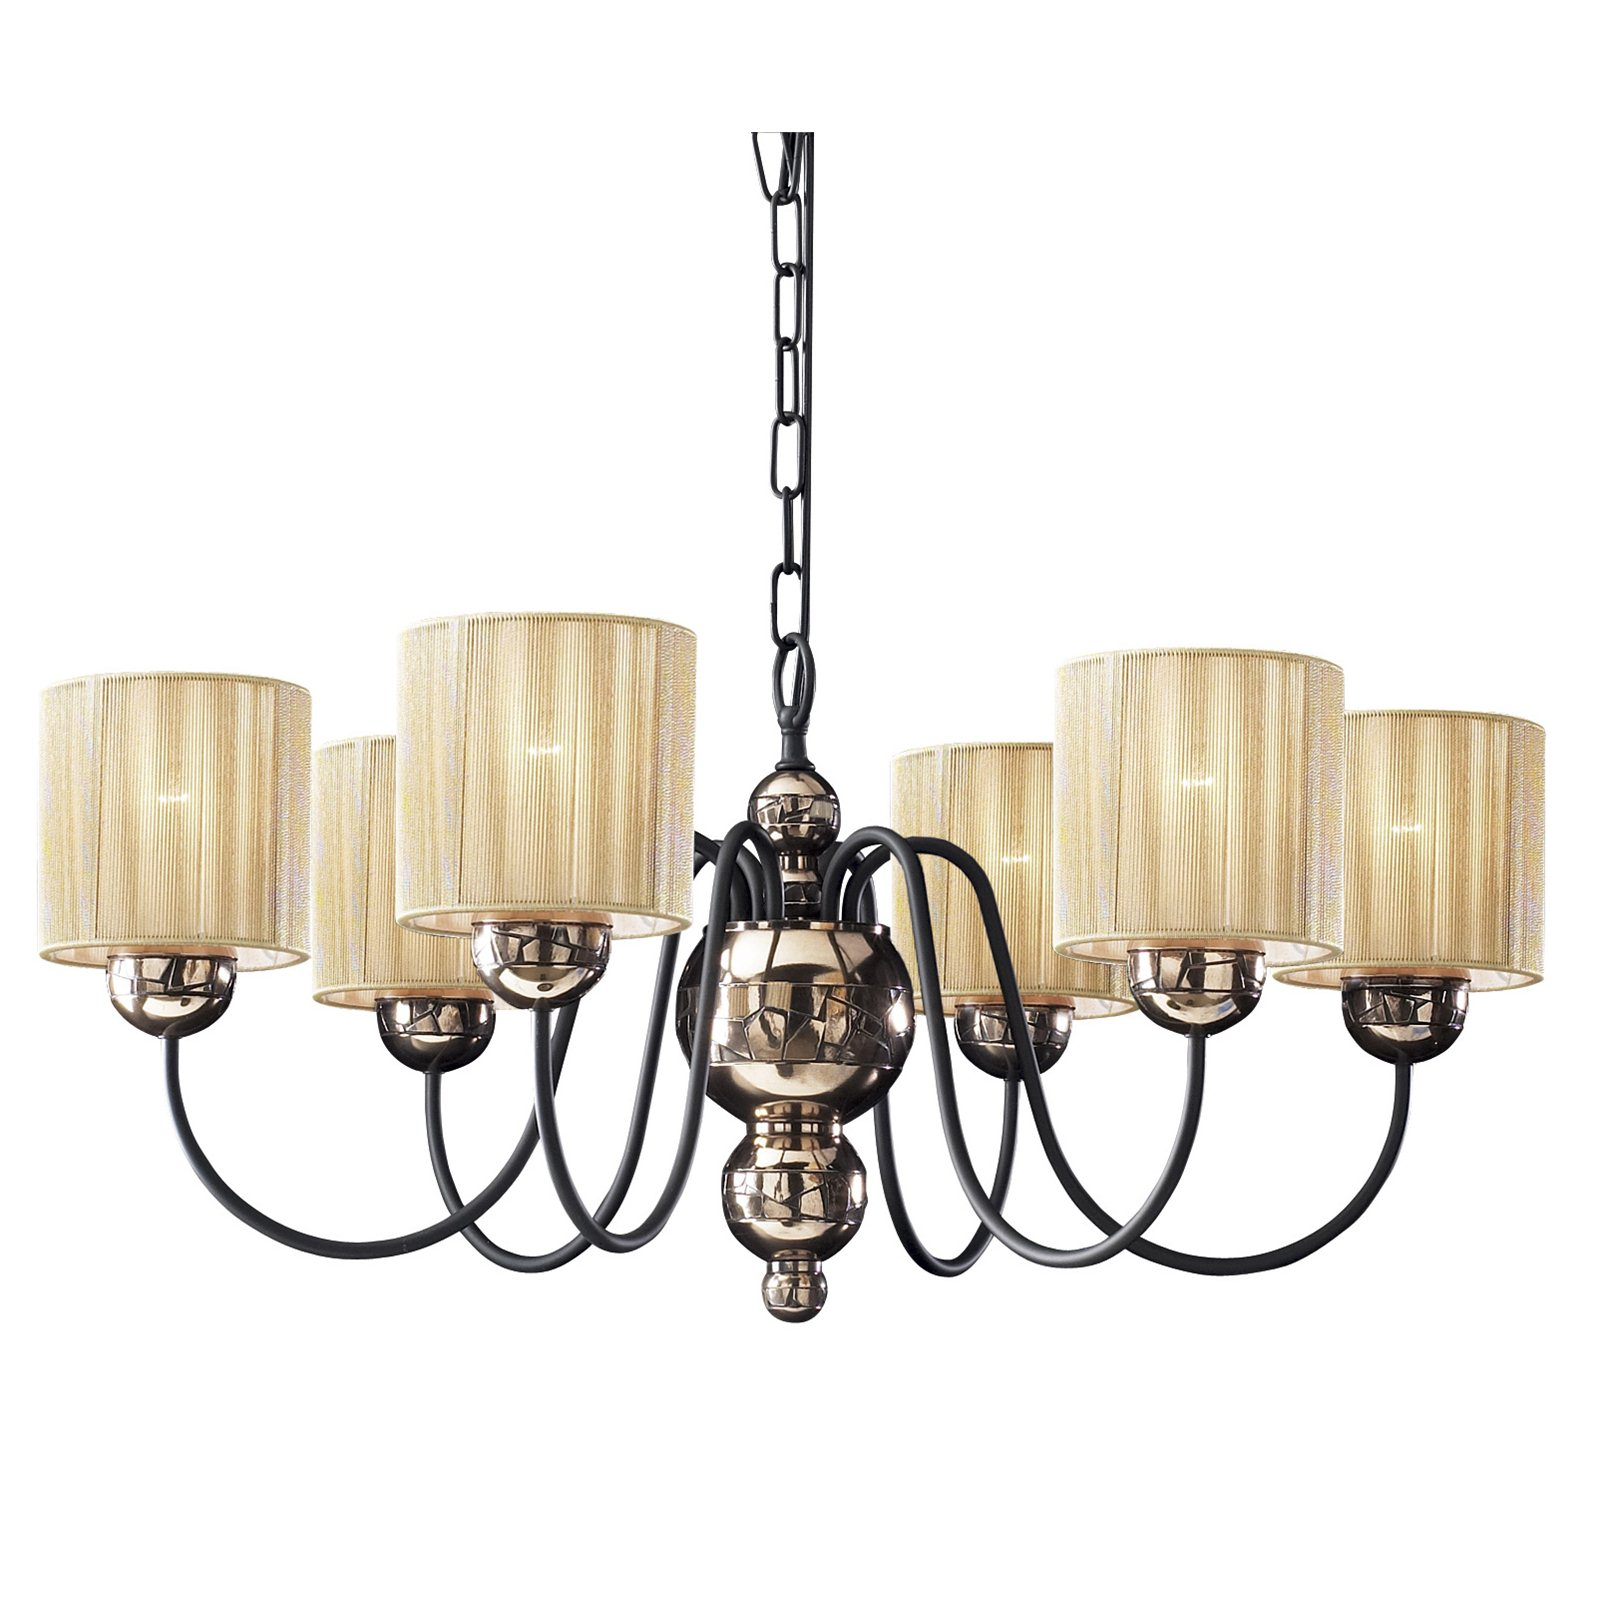 Hicks and hicks garbo 6 light chandelier in bronze wcream shades hicks and hicks garbo 6 light chandelier in bronze wcream shades hicks hicks arubaitofo Choice Image